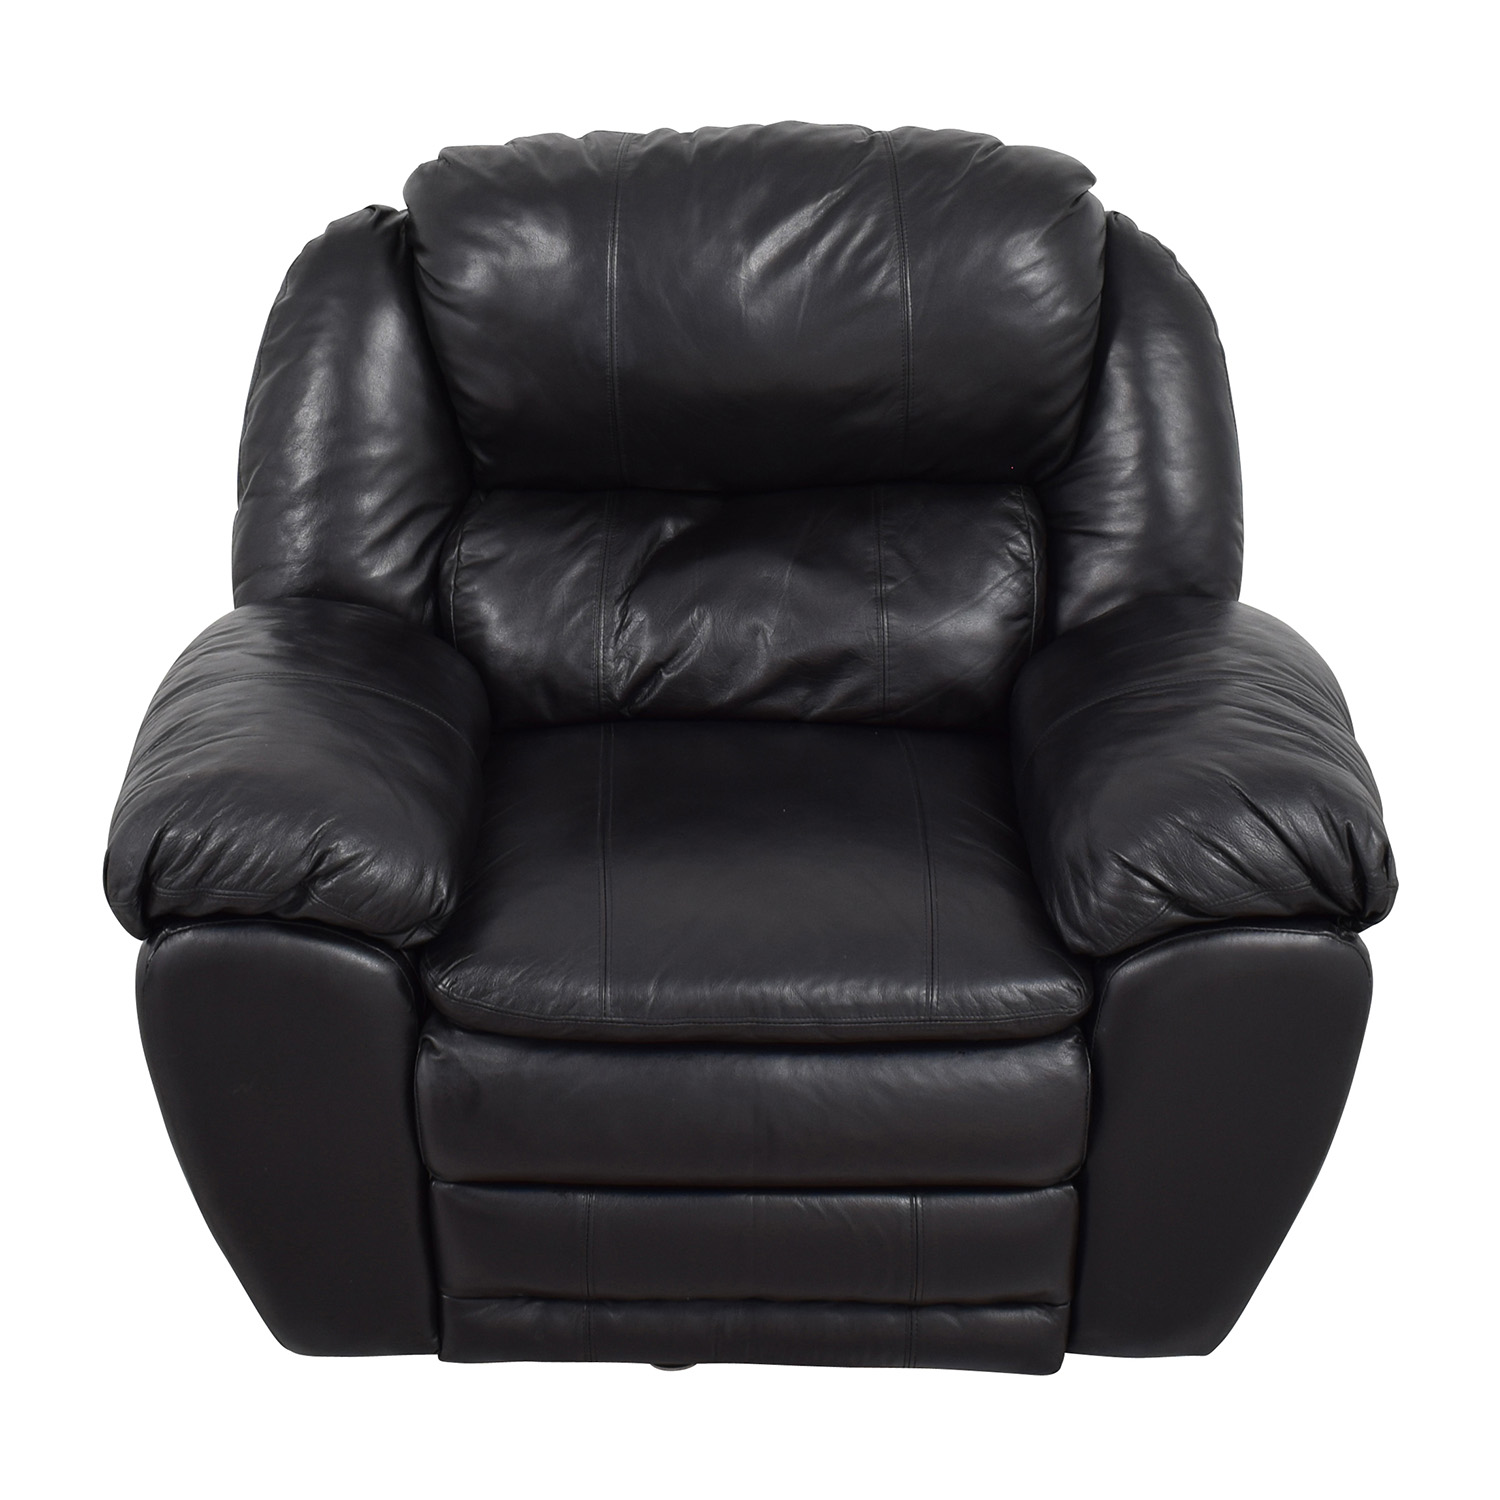 Black Chairs For Sale Recliners Used Recliners For Sale